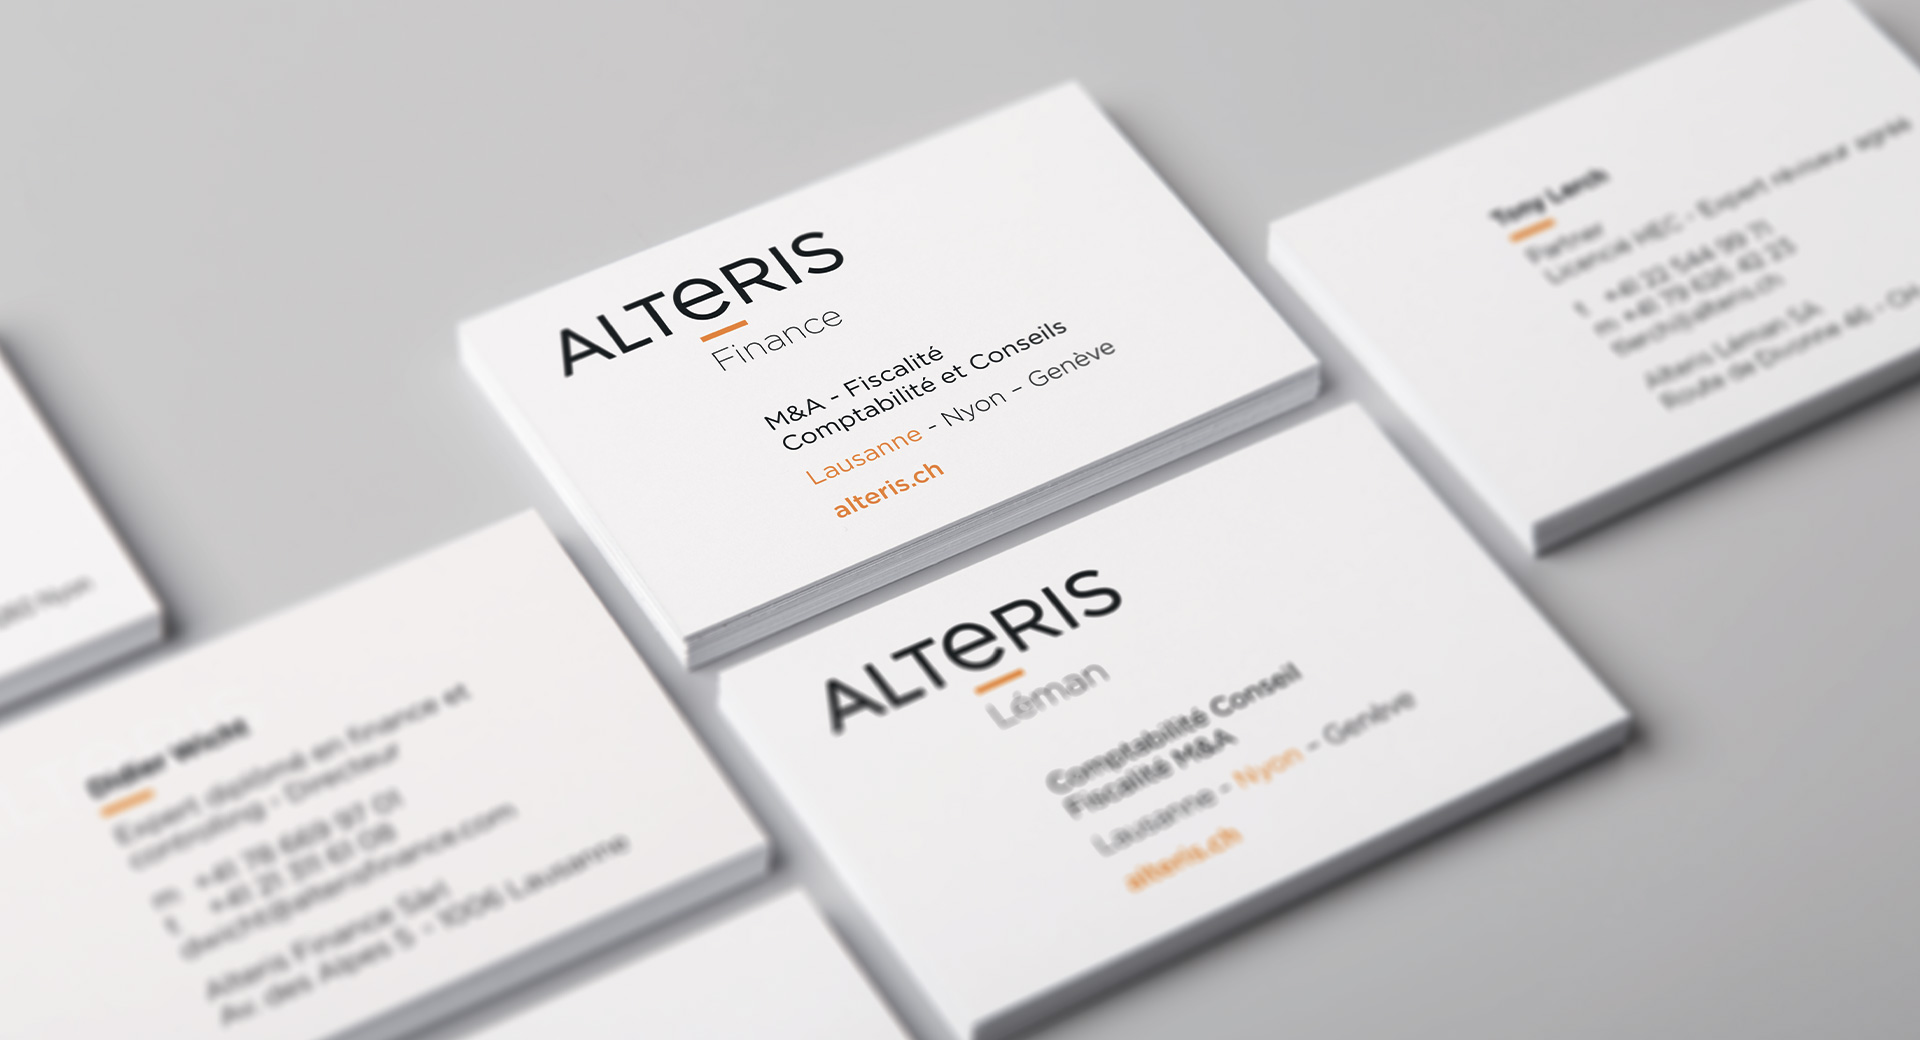 2.1_alteris_id_businesscard